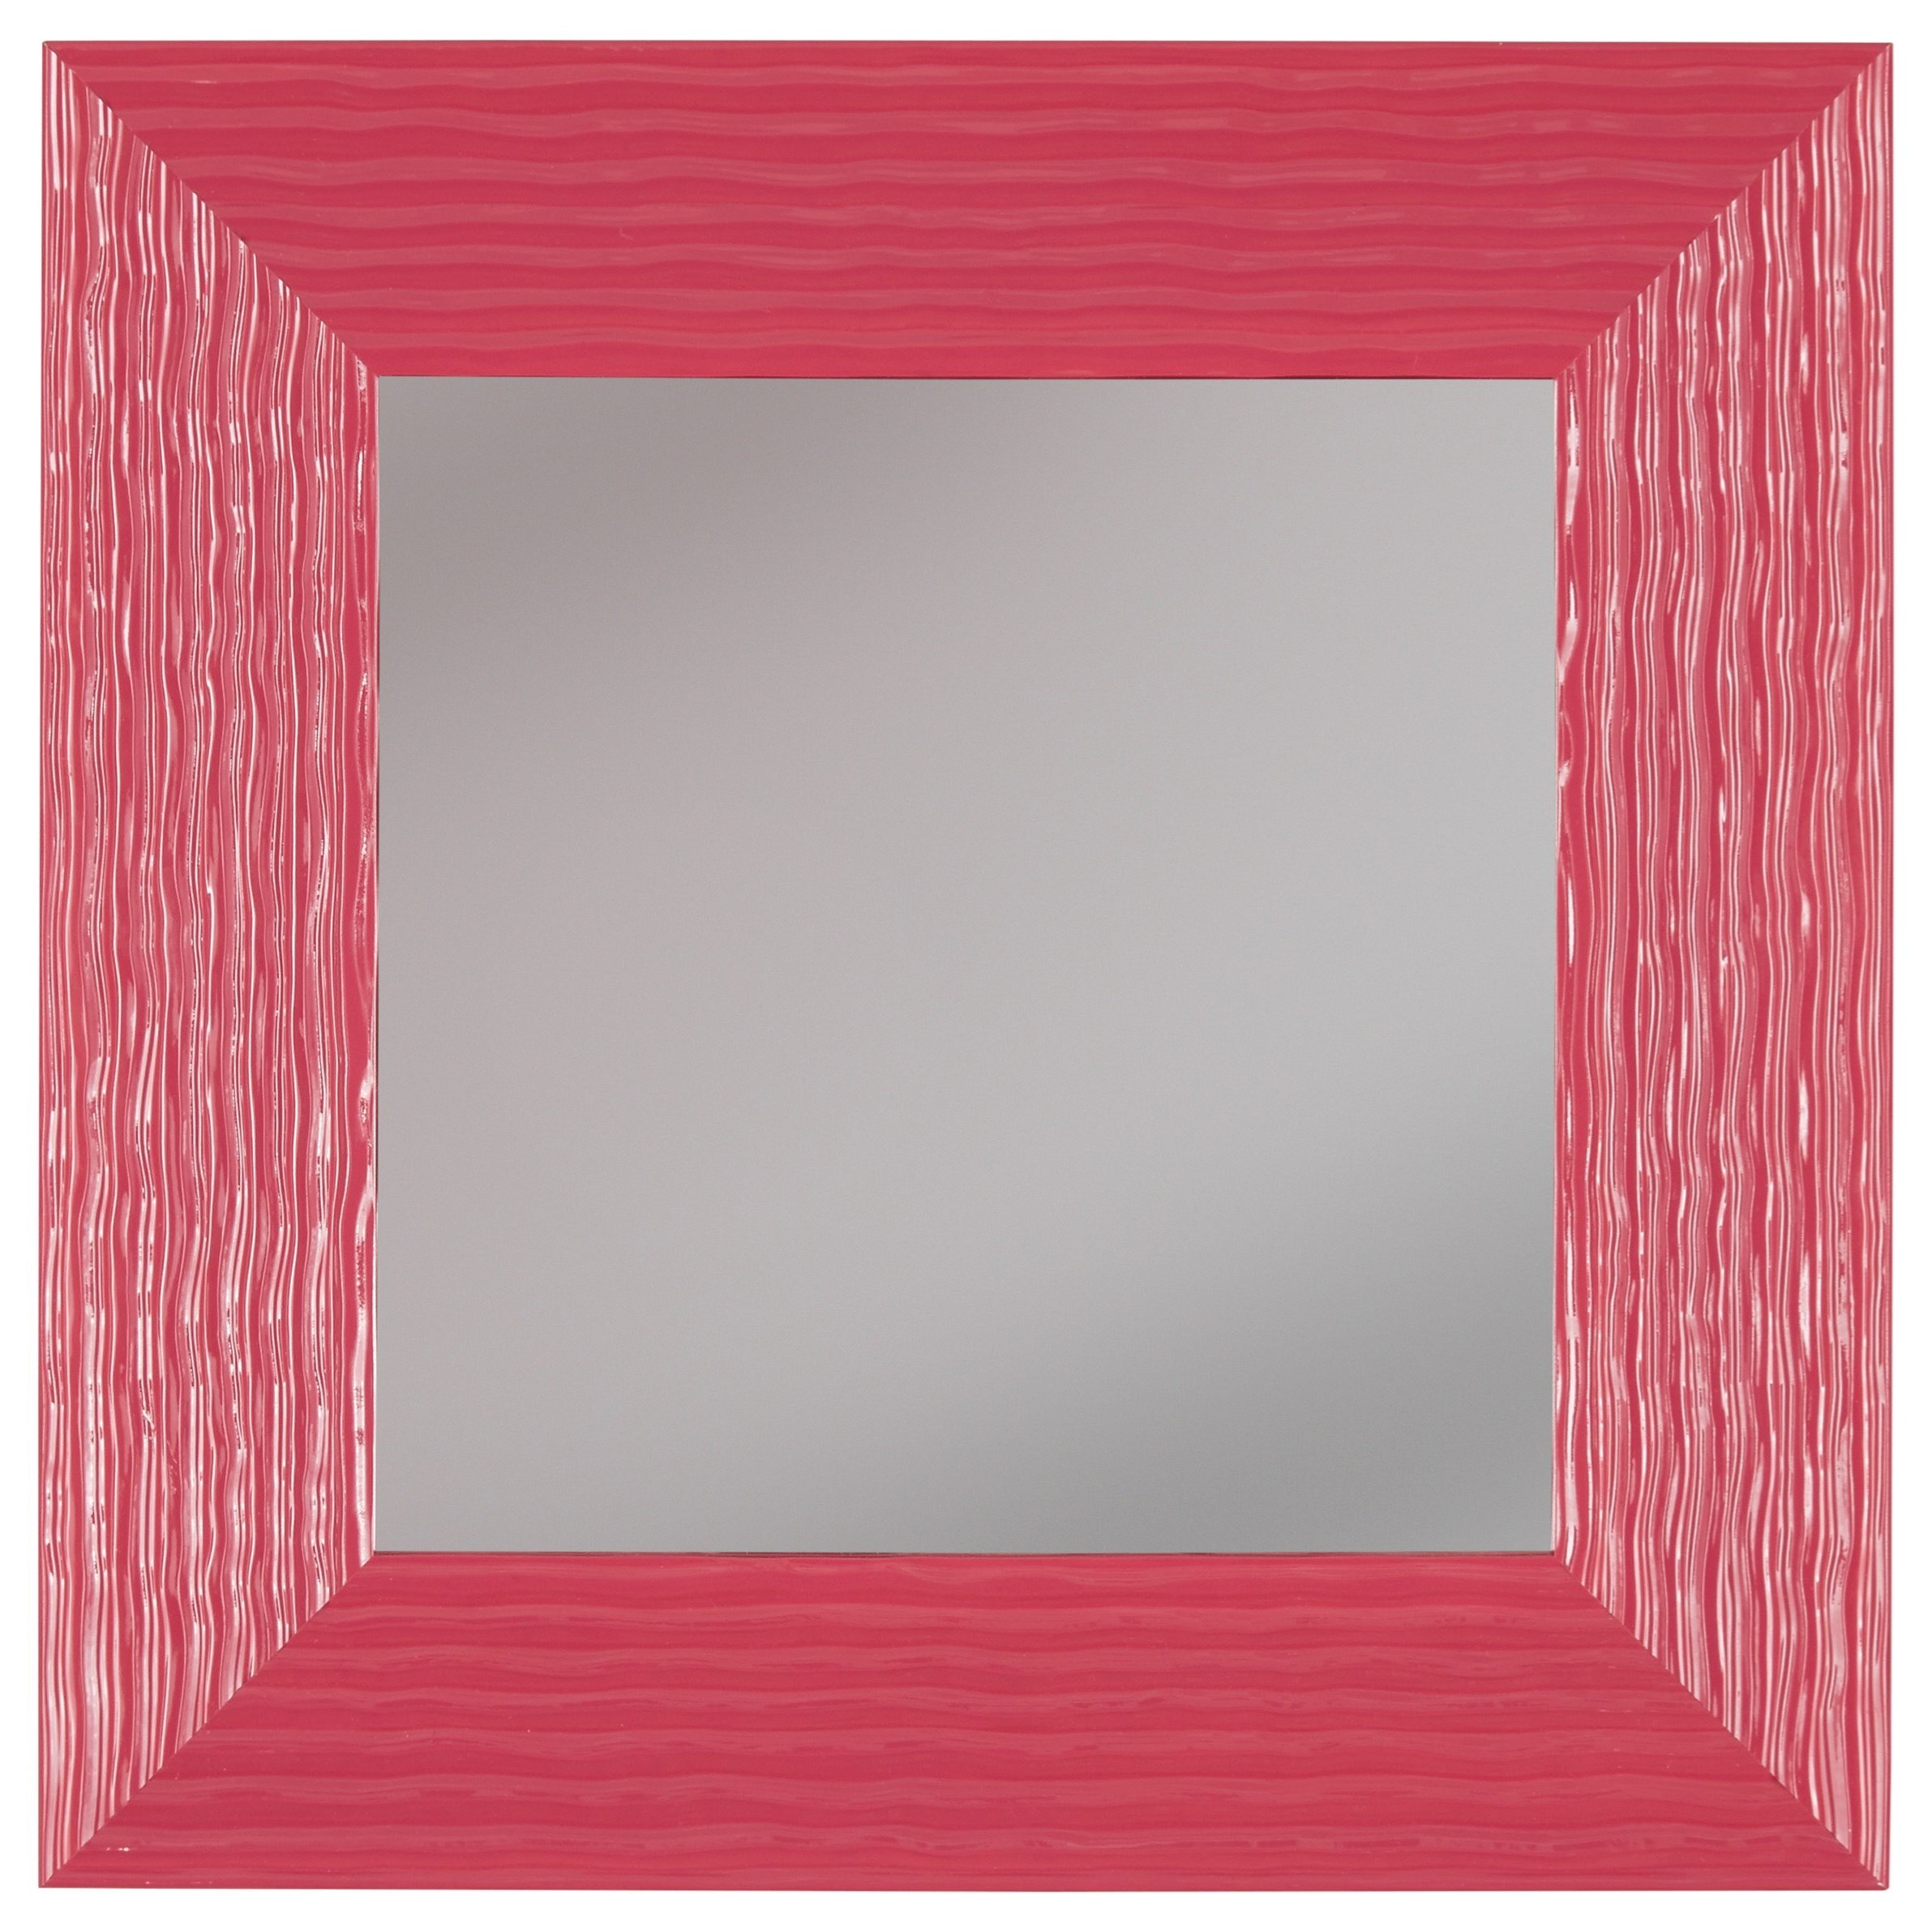 Signature Design by Ashley Accent Mirrors Odelyn Fuchsia Wall Mirror - Item Number: A8010013